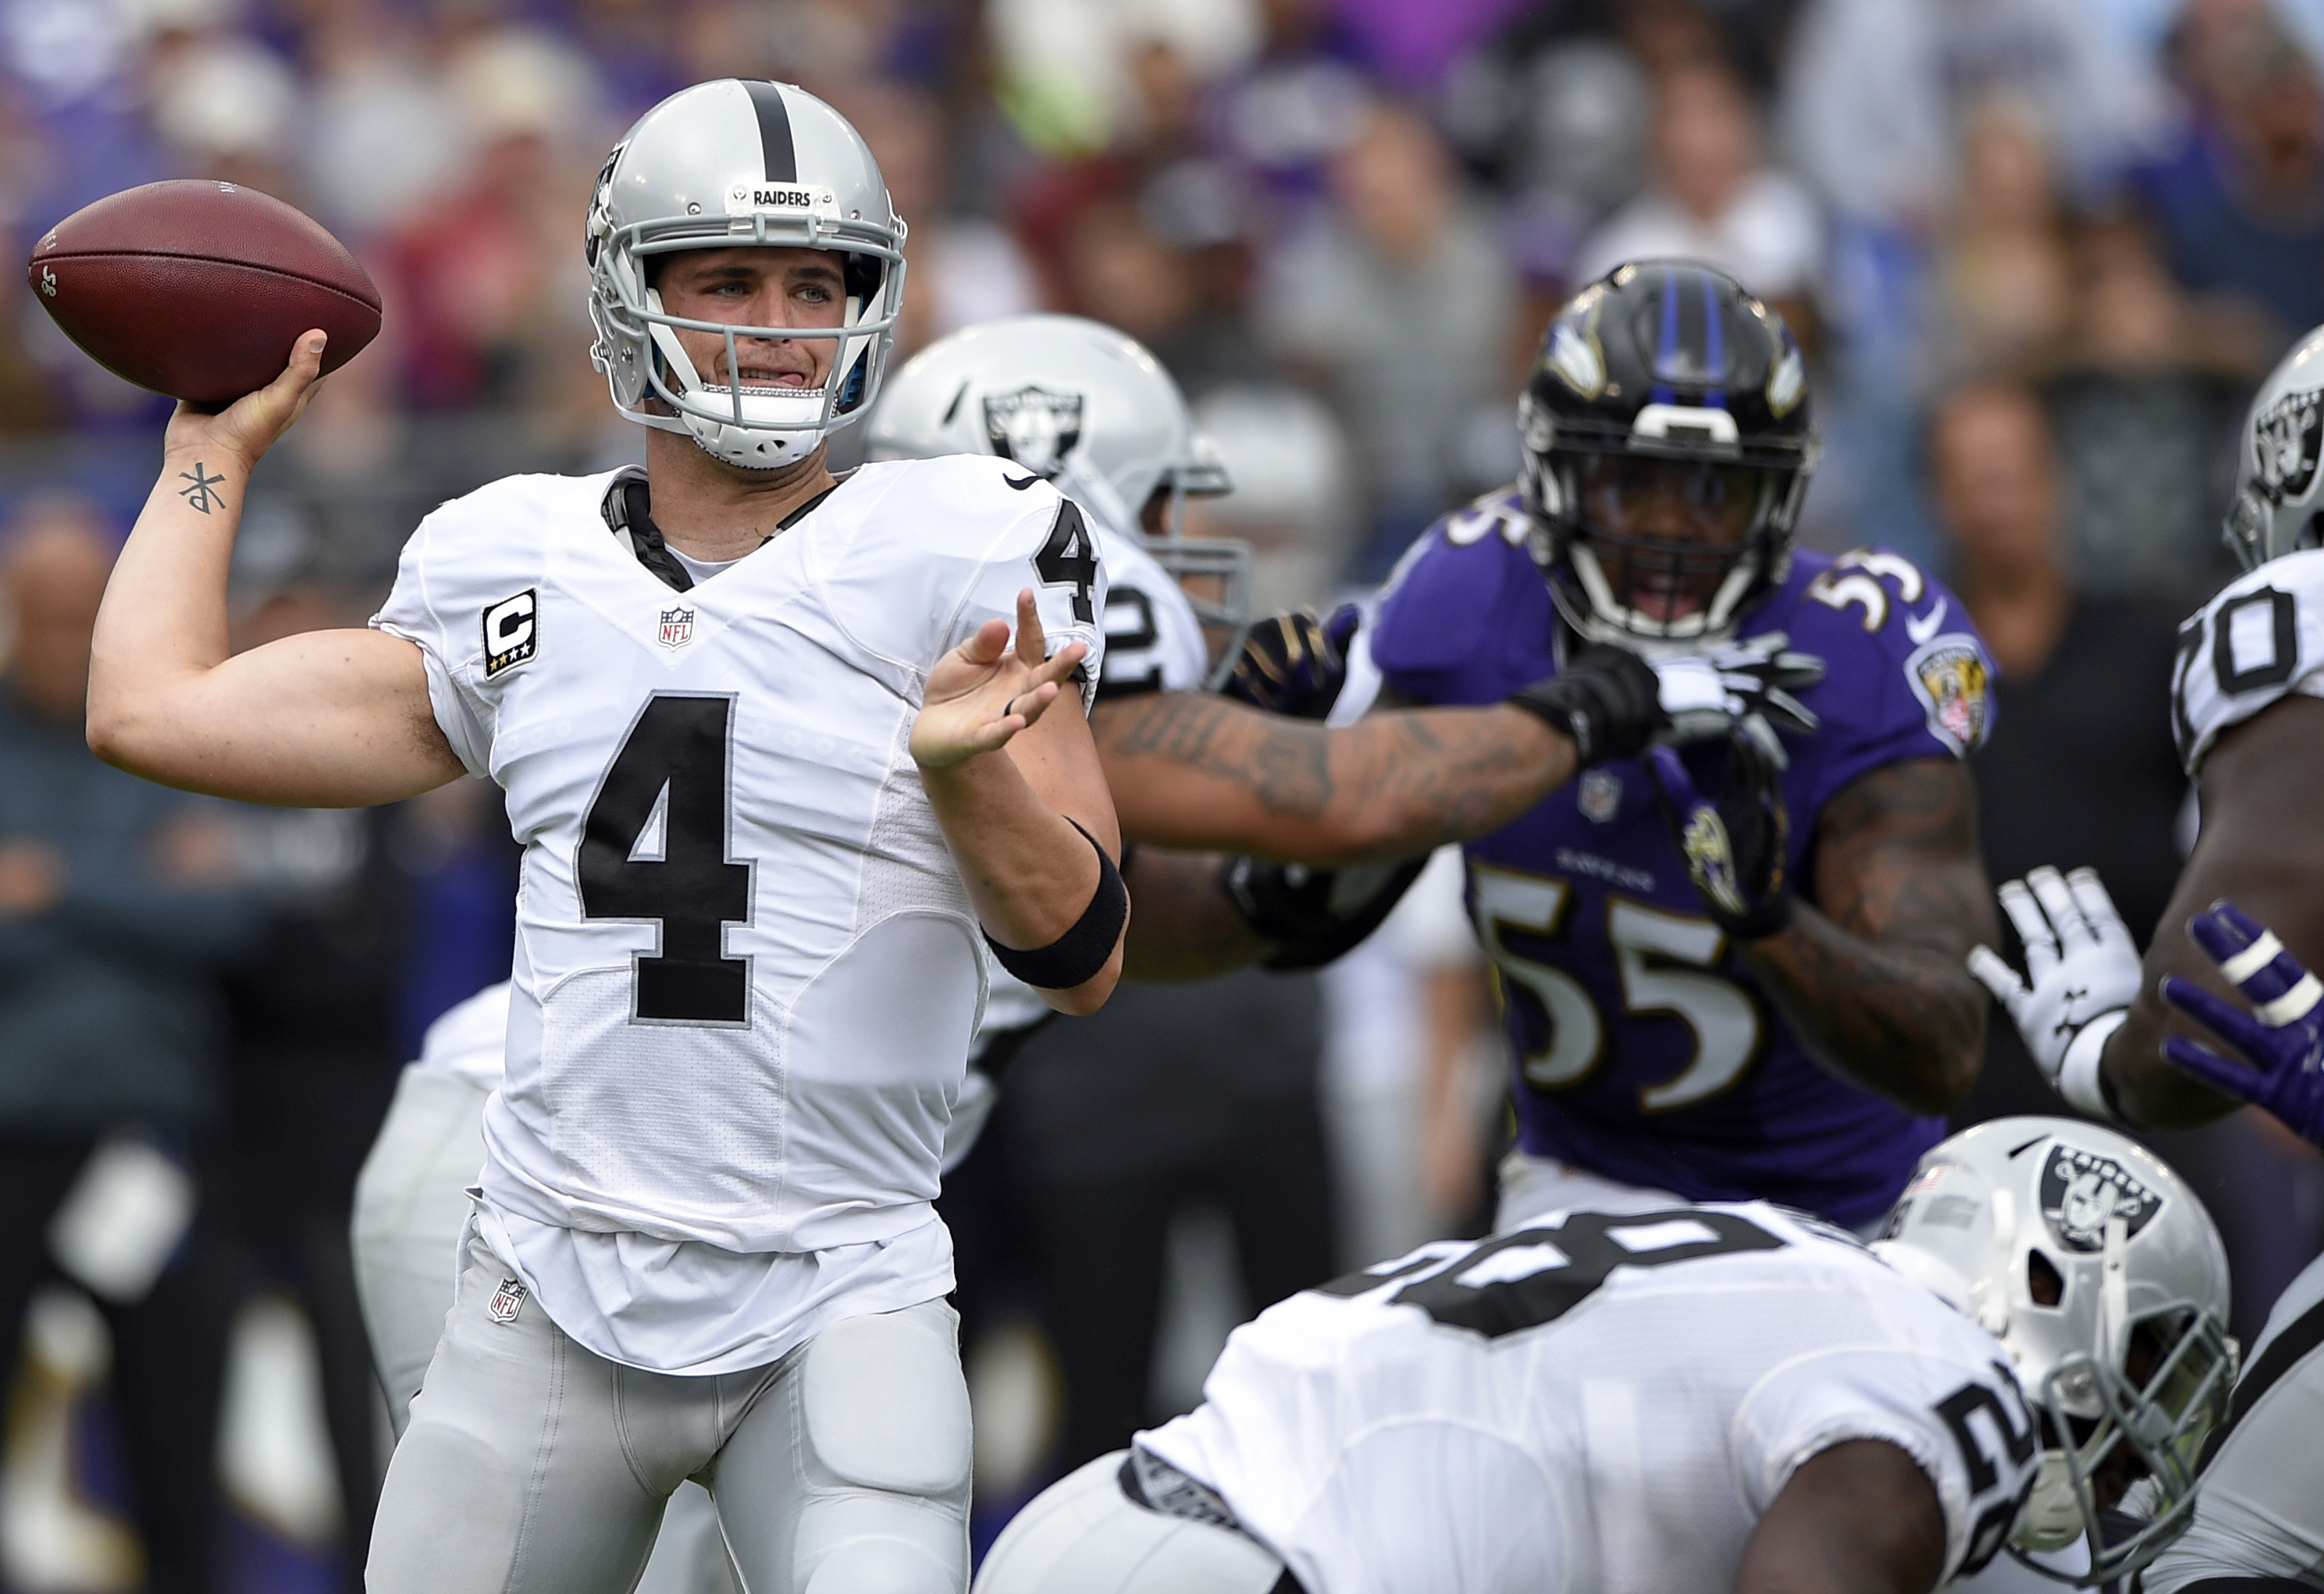 FILE - In this Sunday, Oct. 2, 2016, file photo, Oakland Raiders quarterback Derek Carr (4) throws to a receiver in the first half of an NFL football game against the Baltimore Ravens in Baltimore. The Raiders play the San Diego Chargers on Sunday. (AP Ph